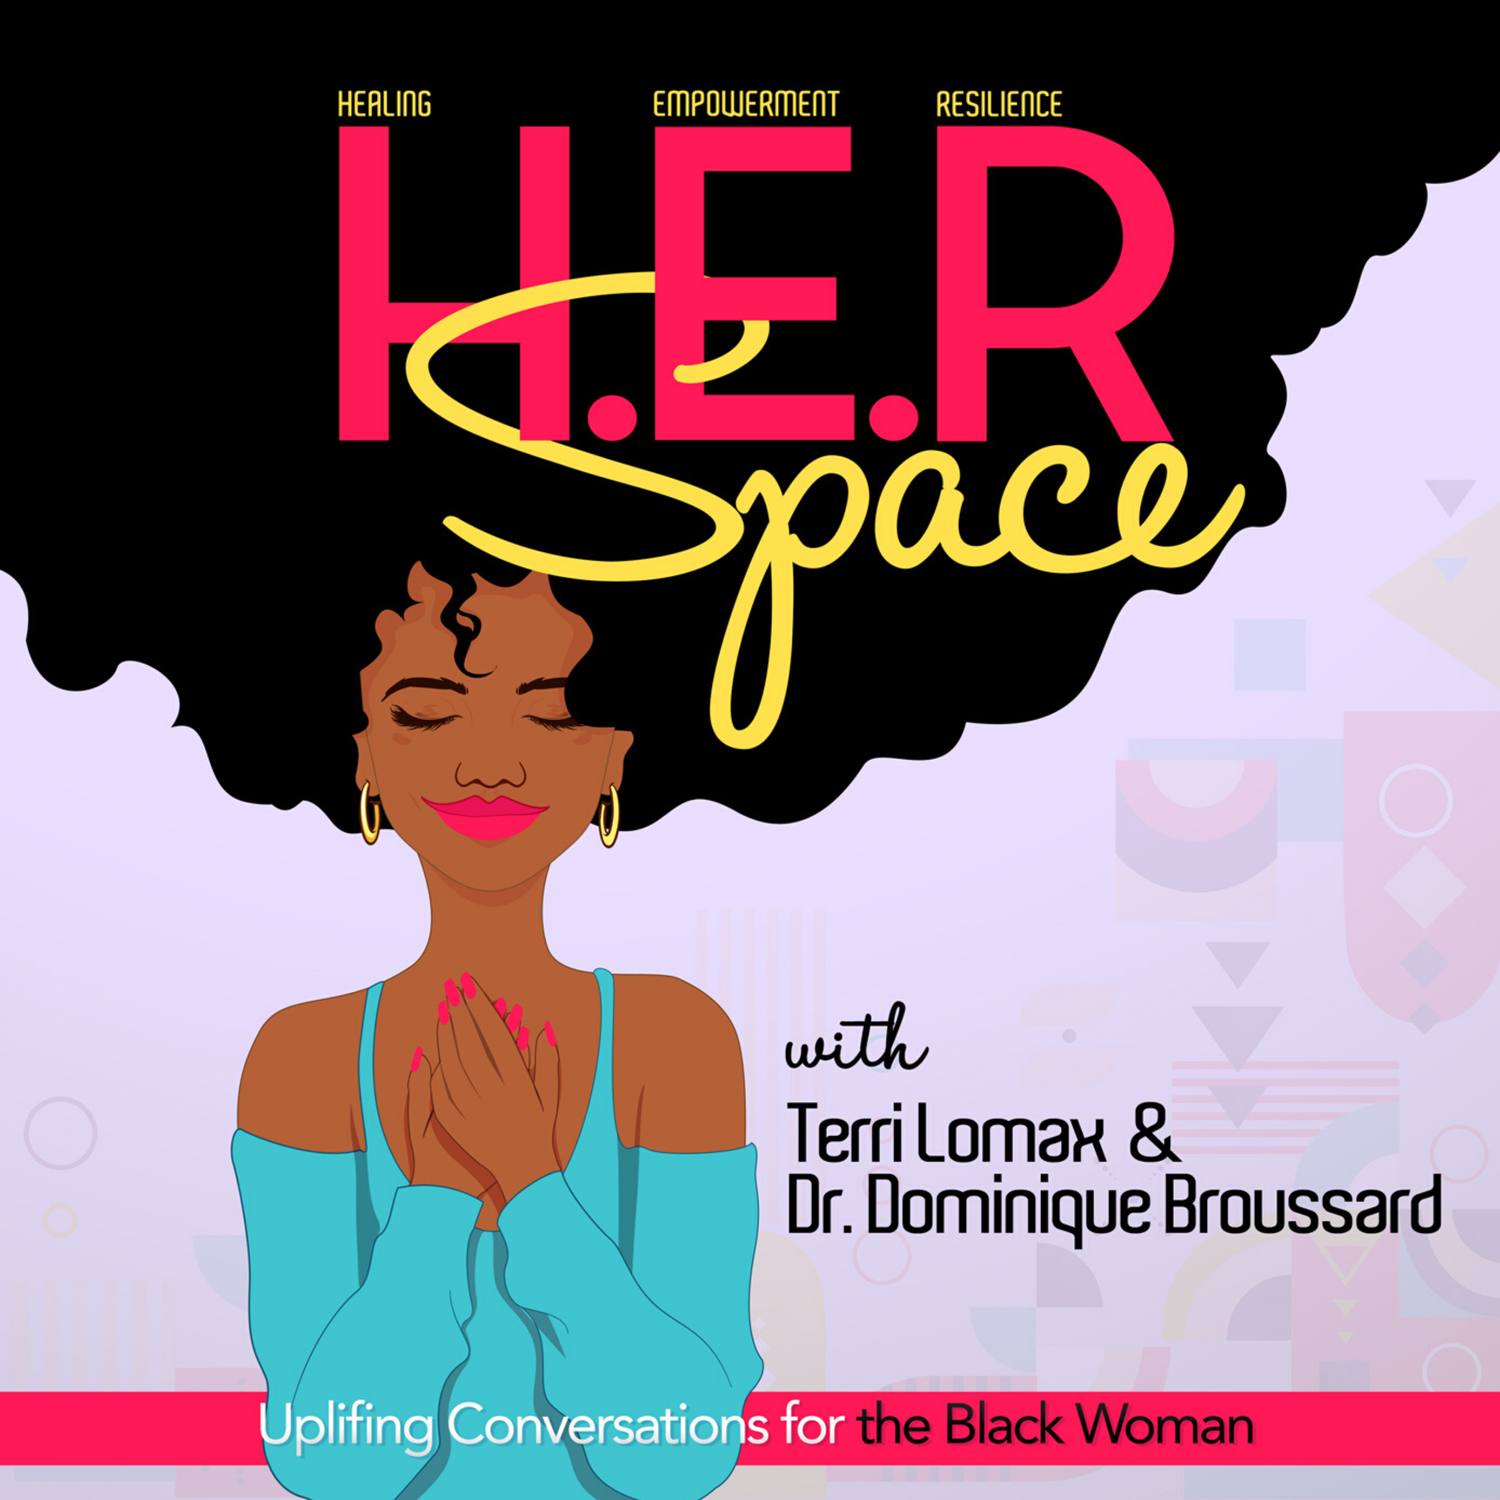 H.E.R Space: Uplifting Conversations for the Black Woman:Terri and Dom